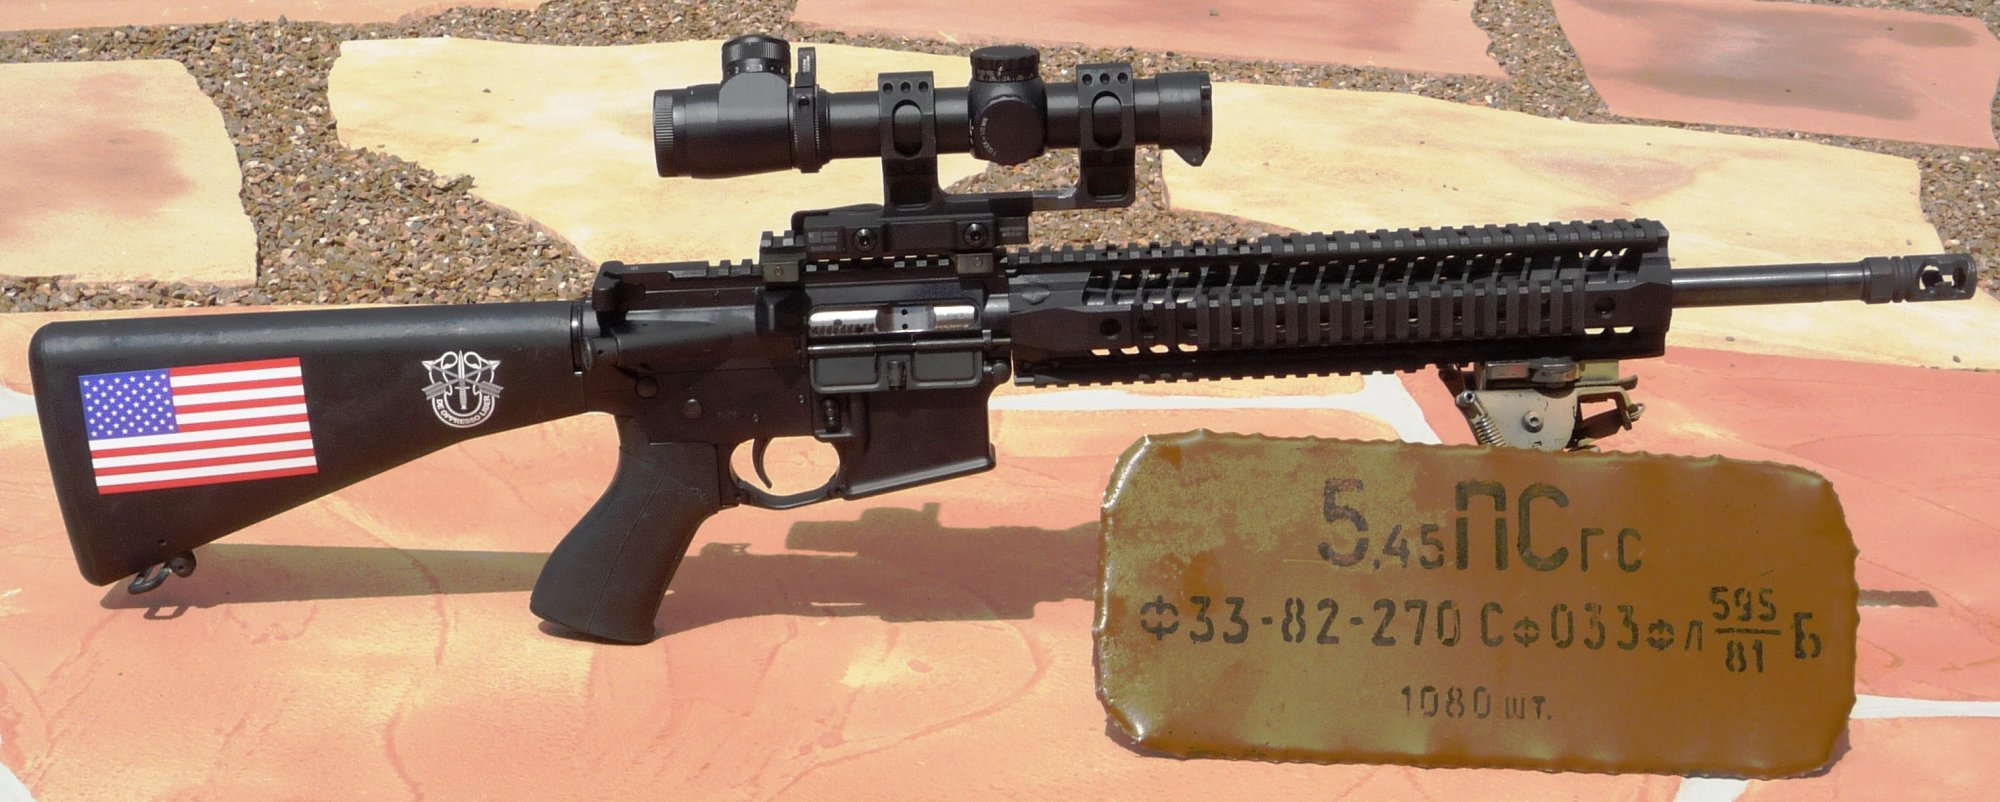 Spike's Tactical 5.45x39mm Russian Mid-Length Tactical AR Carbine/Rifle: The greatest training gun ever…if you have to buy your own ammunition, that is.